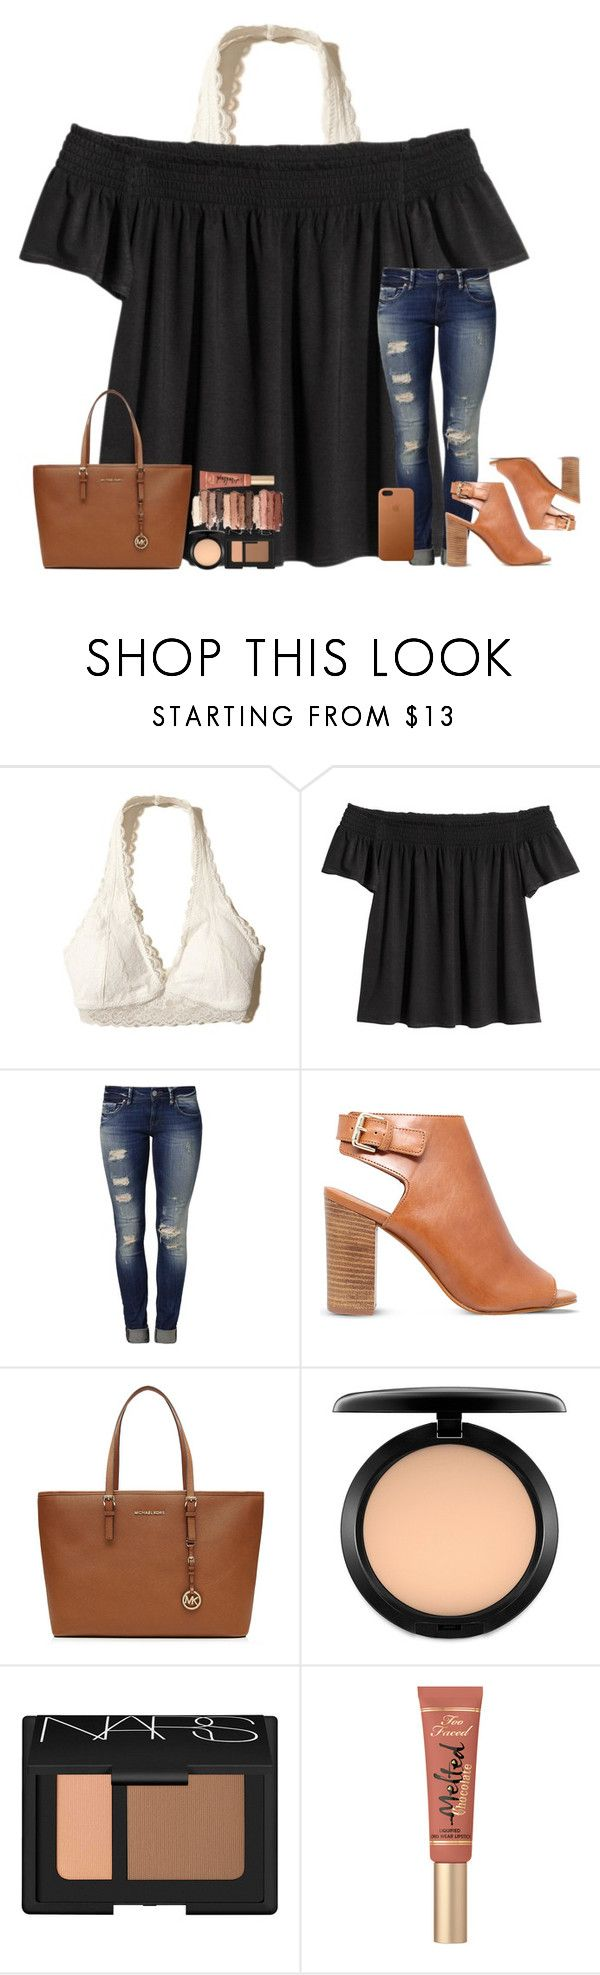 """""""Let's Take Time To Fall In Love Again"""" by theafergusma ❤ liked on Polyvore featuring Hollister Co., Mavi, Carvela, MICHAEL Michael Kors, tarte, MAC Cosmetics, NARS Cosmetics and Apple"""